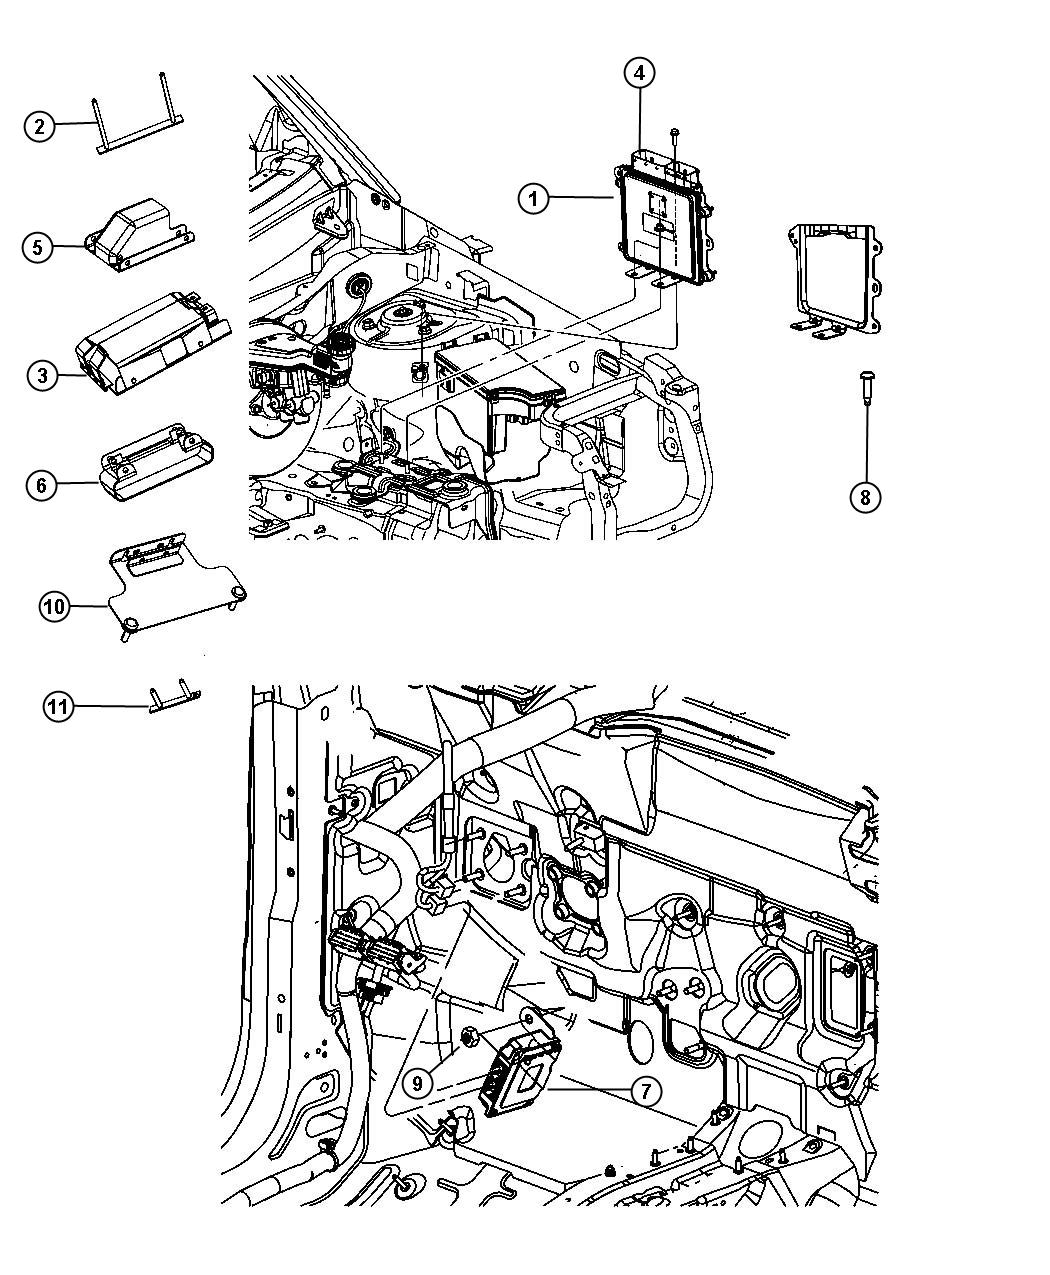 Jeep Compass Module. Transmission control. New for core